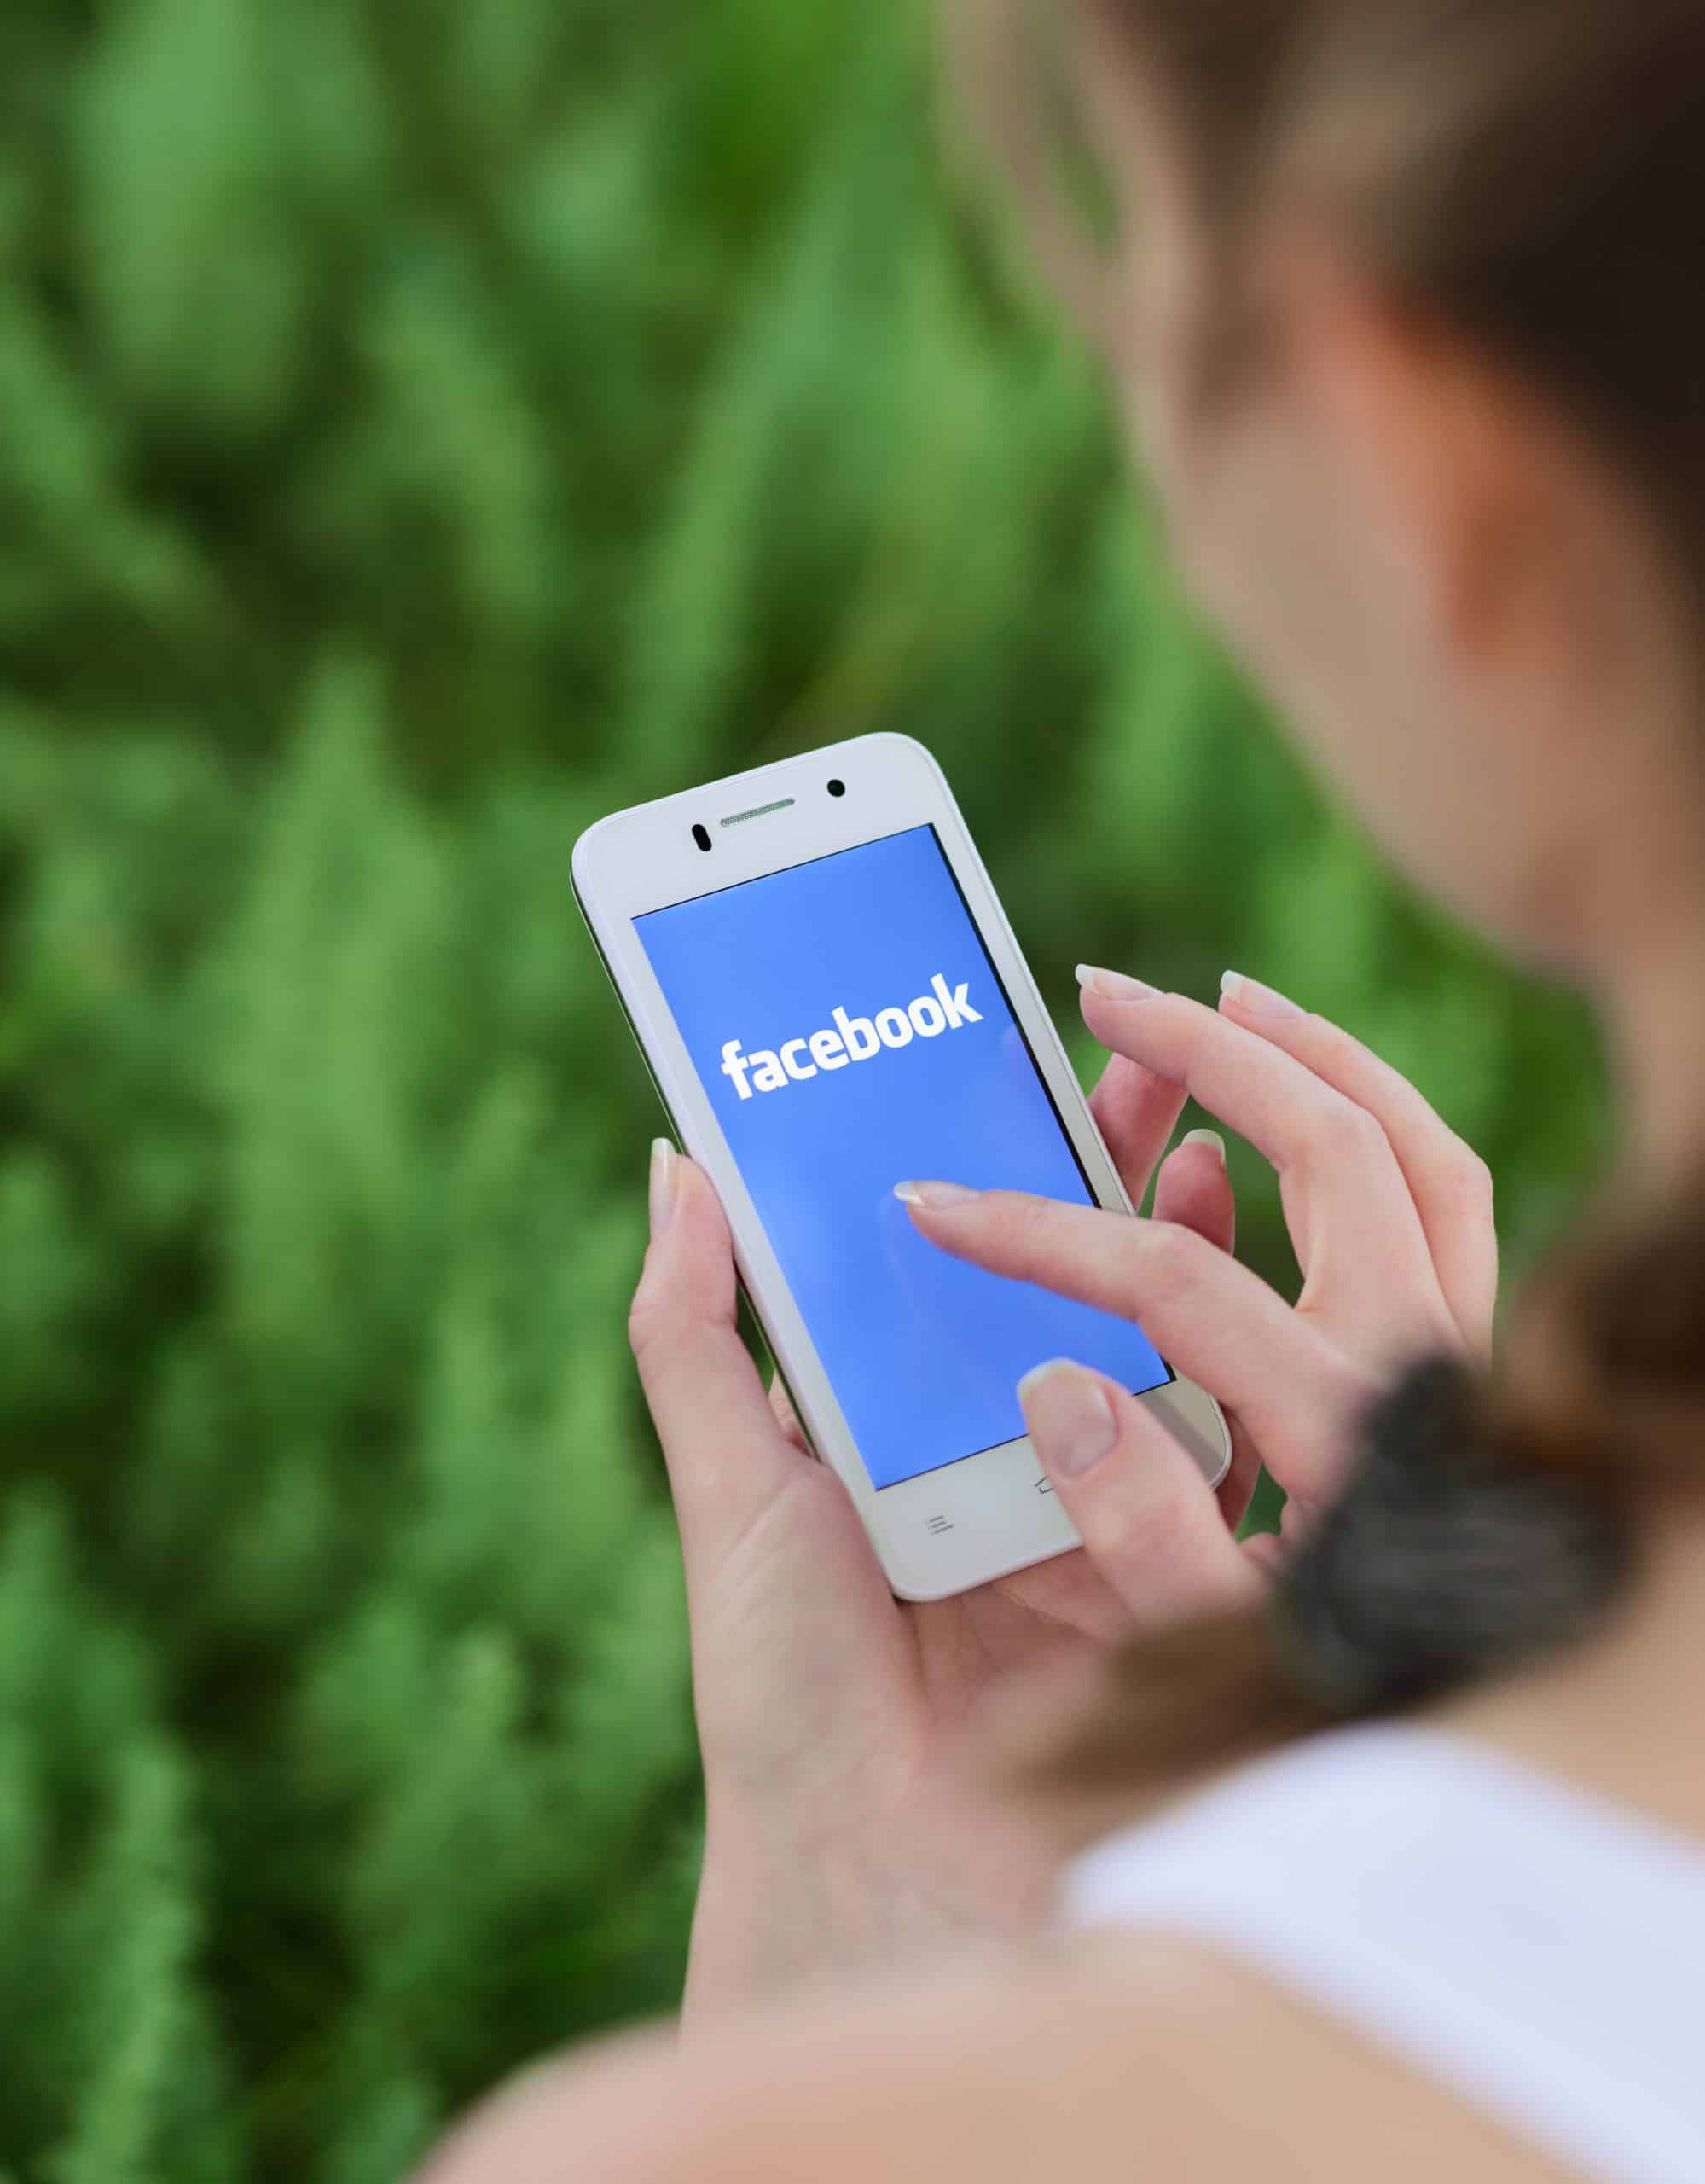 How to Send a Friend Request on Facebook